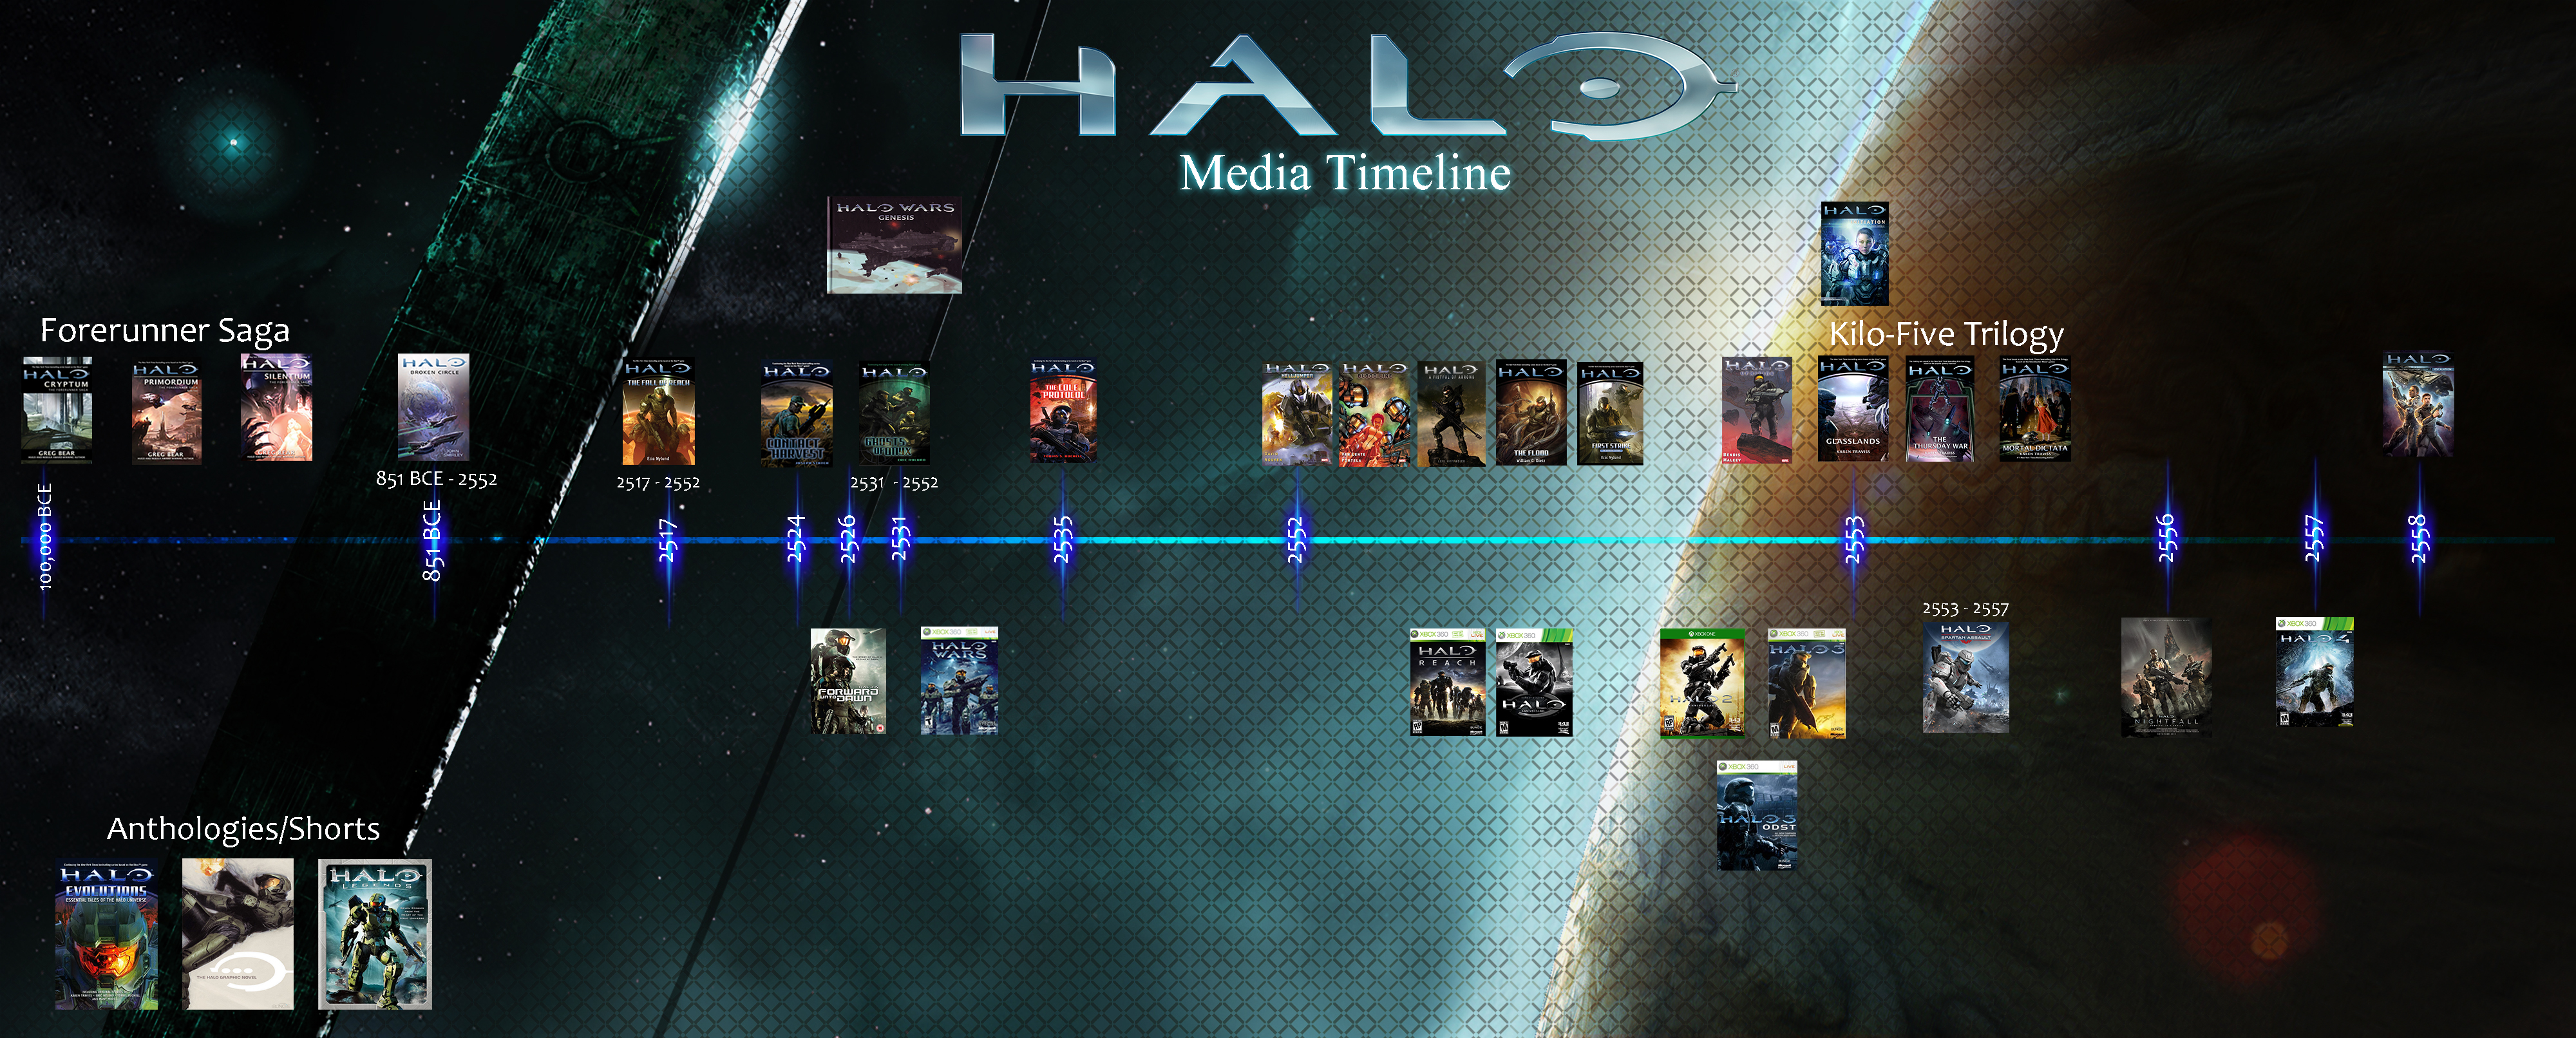 Halo Books Chronology Most Searched Wiring Diagram Right Now